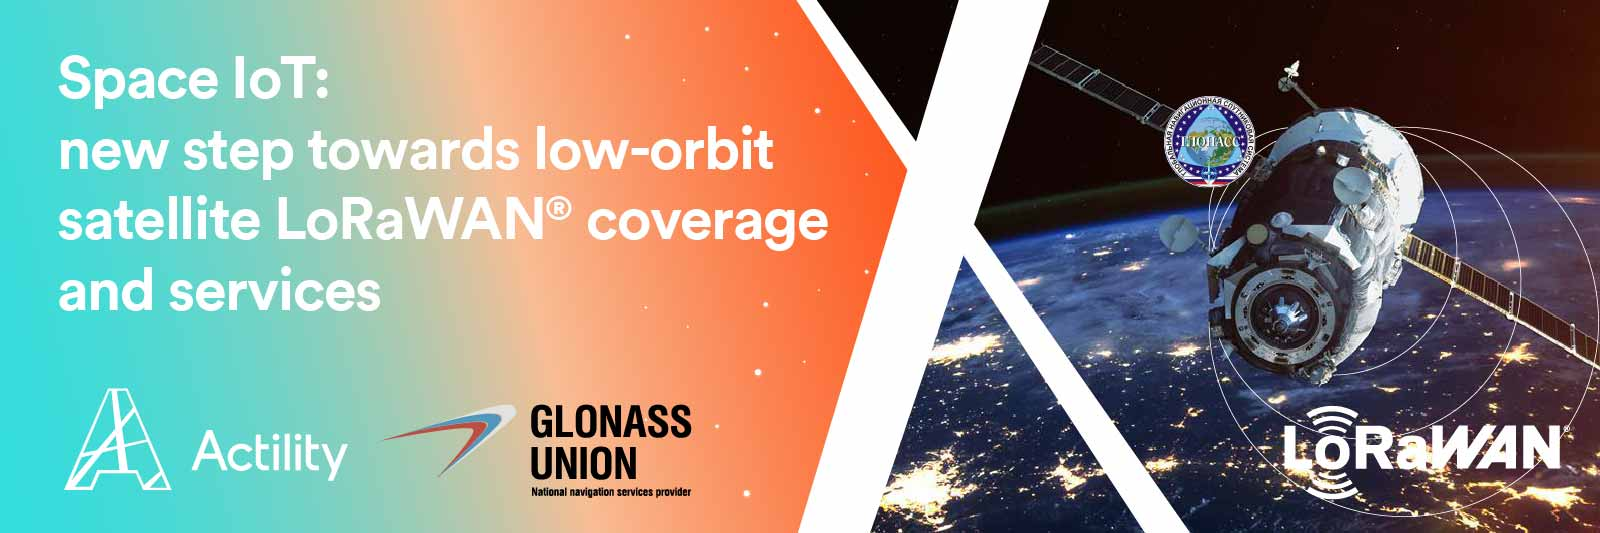 Header image for Glonass press release